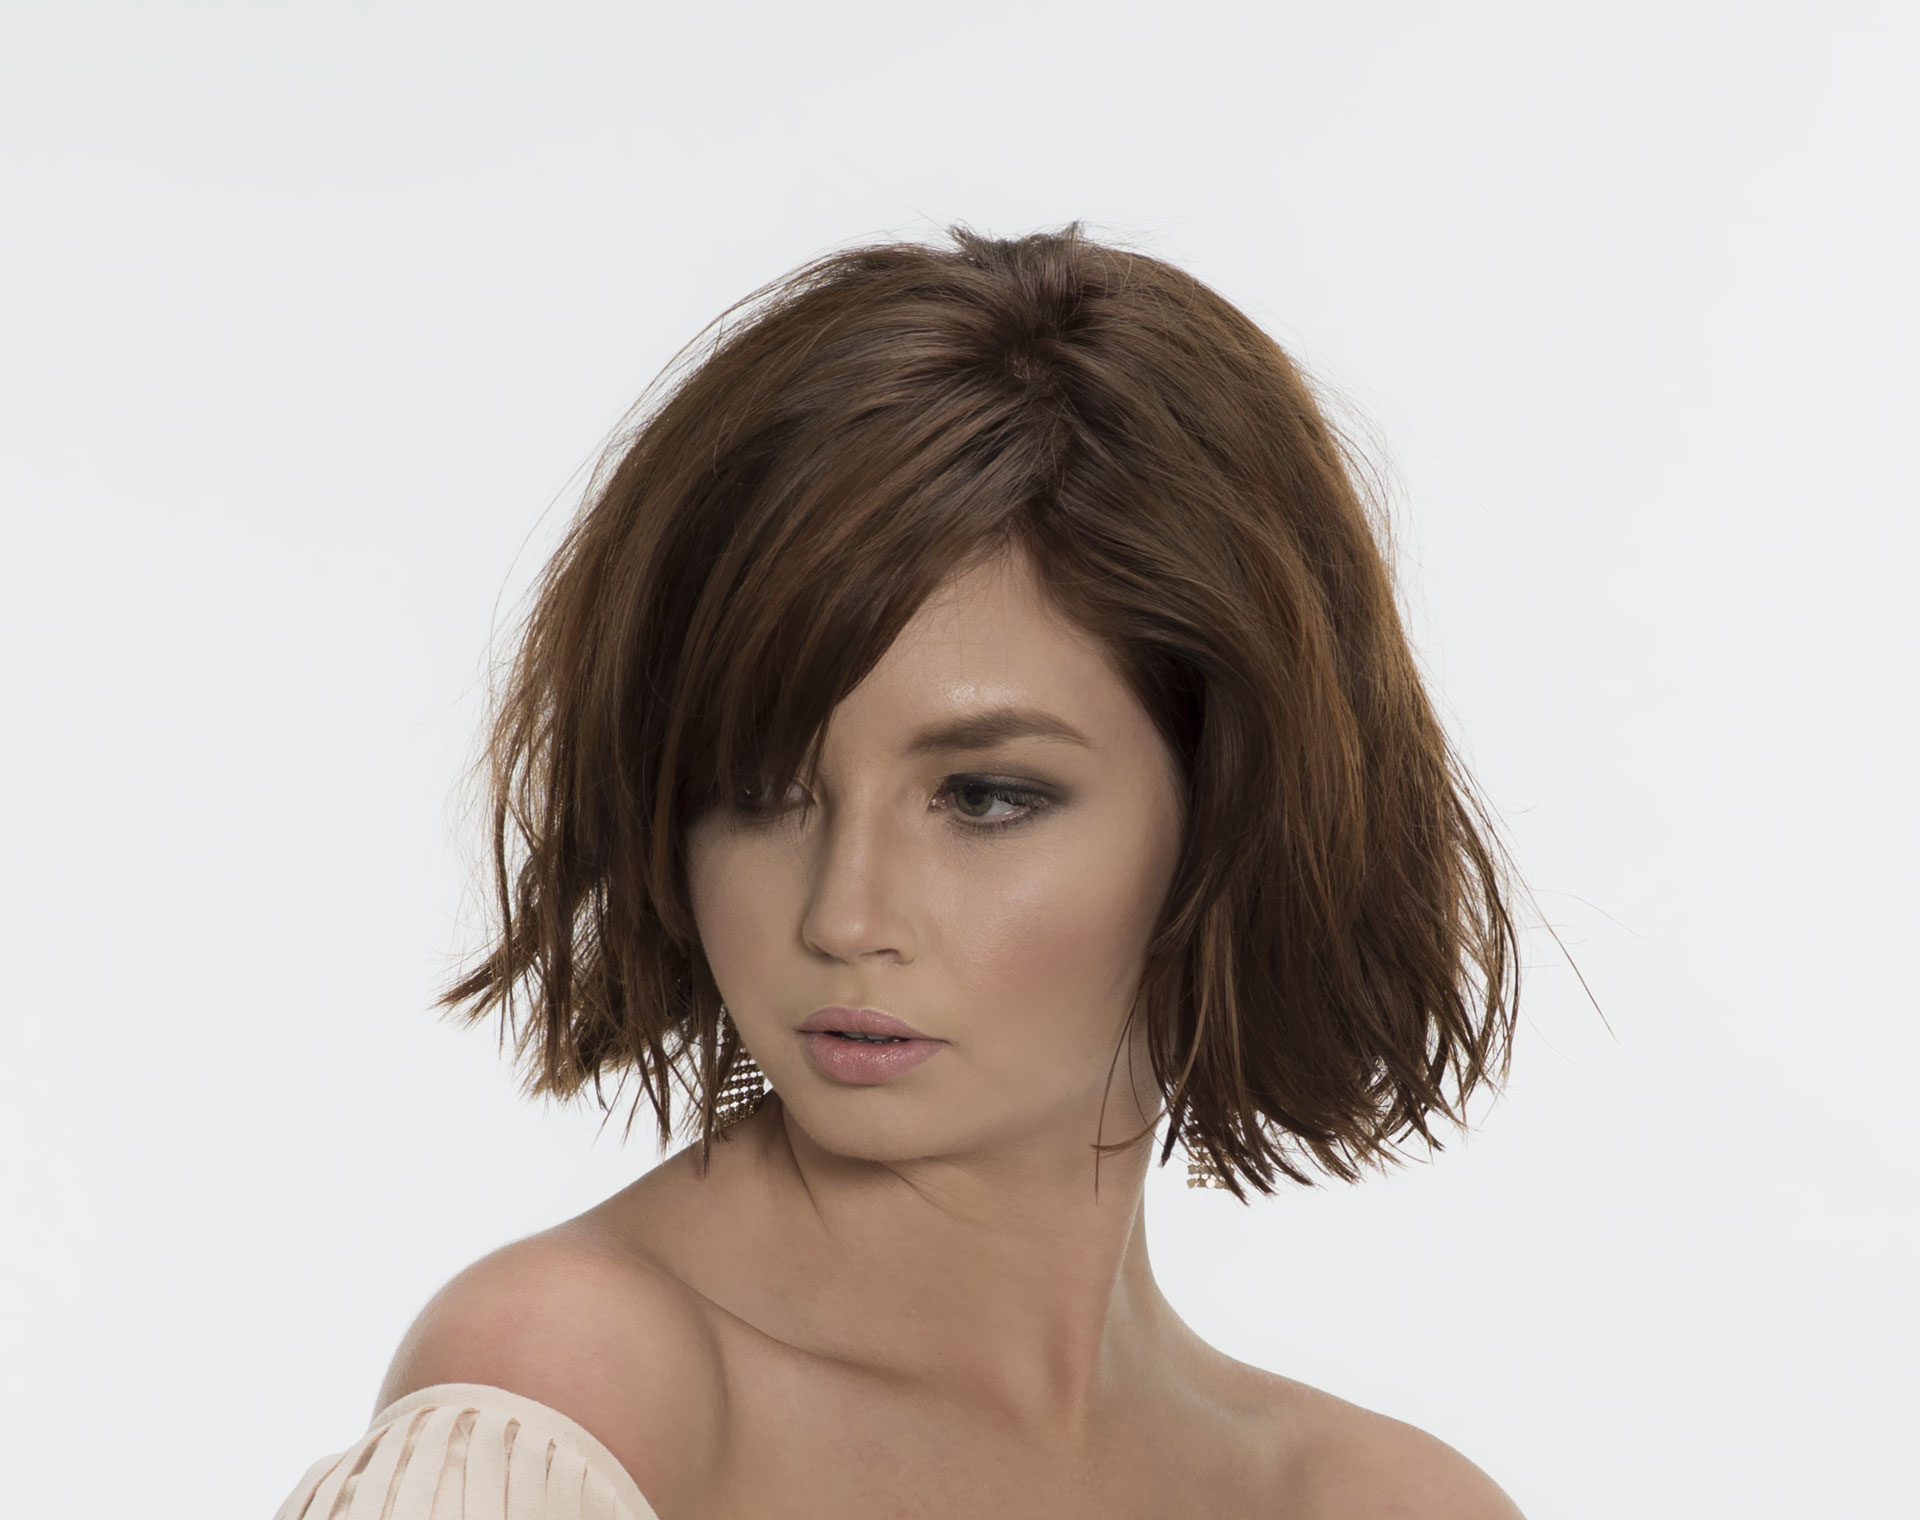 Bobbed Hair Styles: Best Hair Salon For Bob Hairstyle In Dallas Plano Frisco